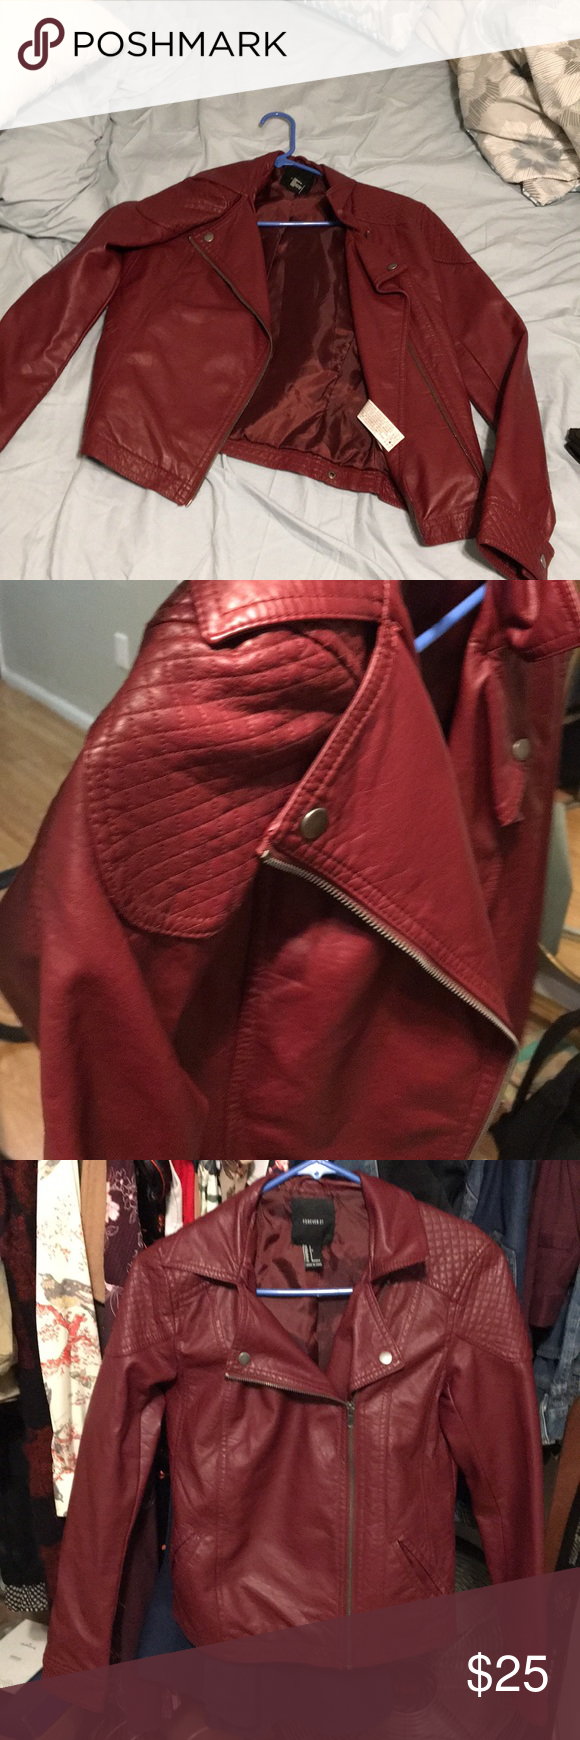 Red fake leather jacket Red leather jacket. Very cute